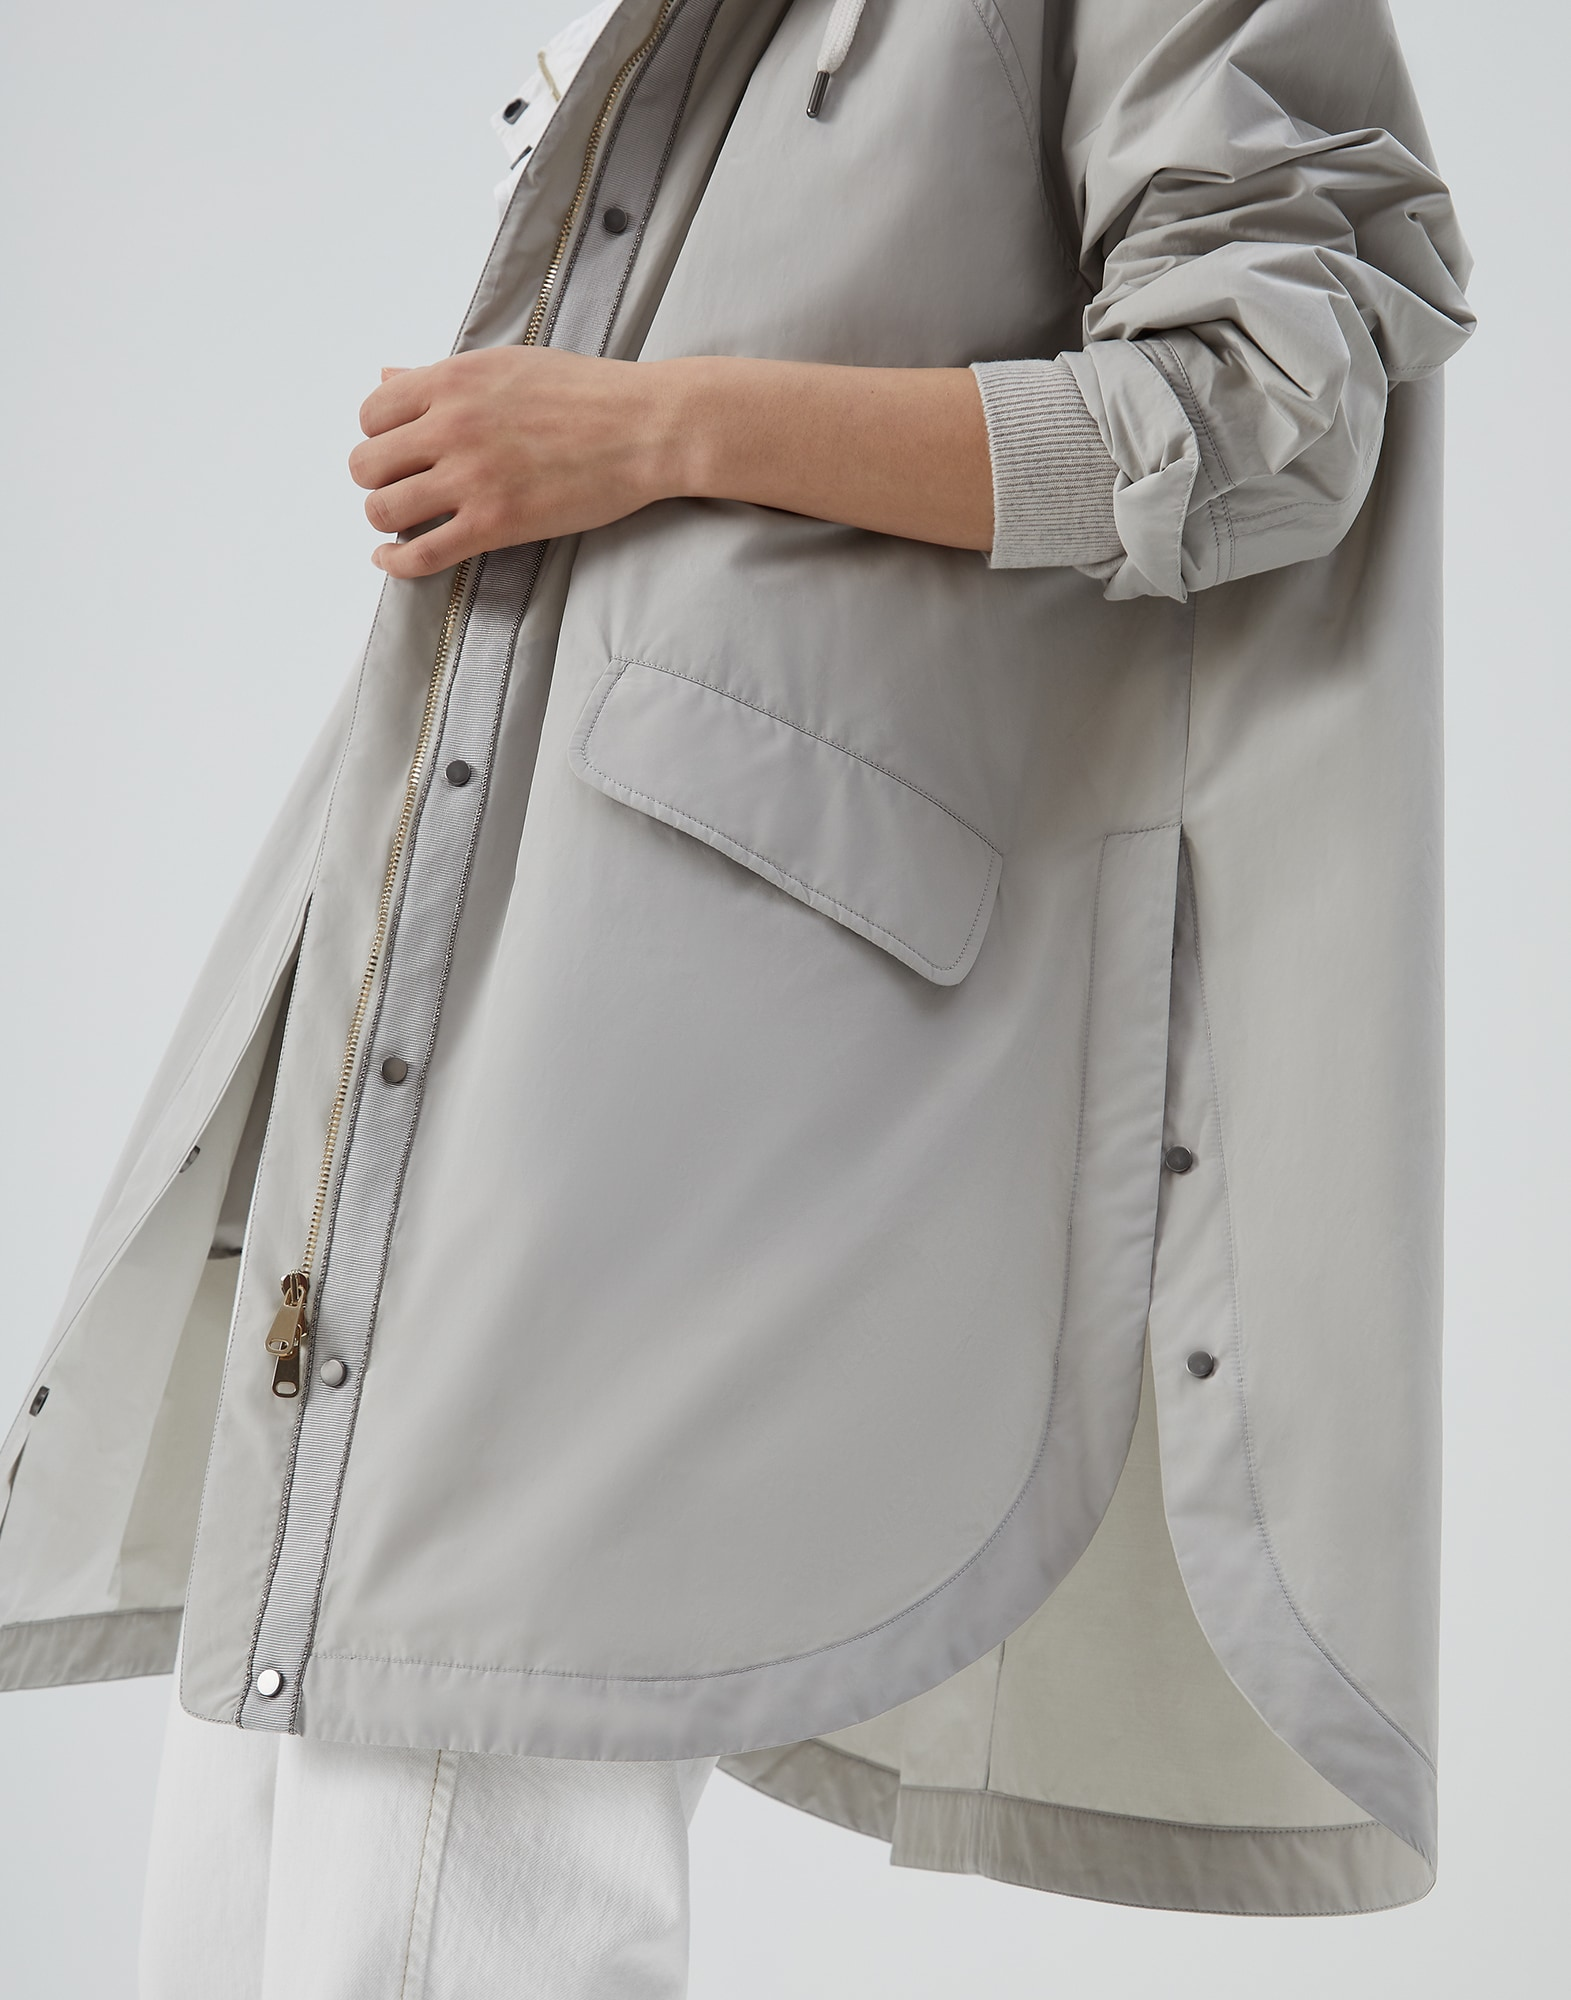 Outerwear Jacket Light Grey Woman 3 - Brunello Cucinelli